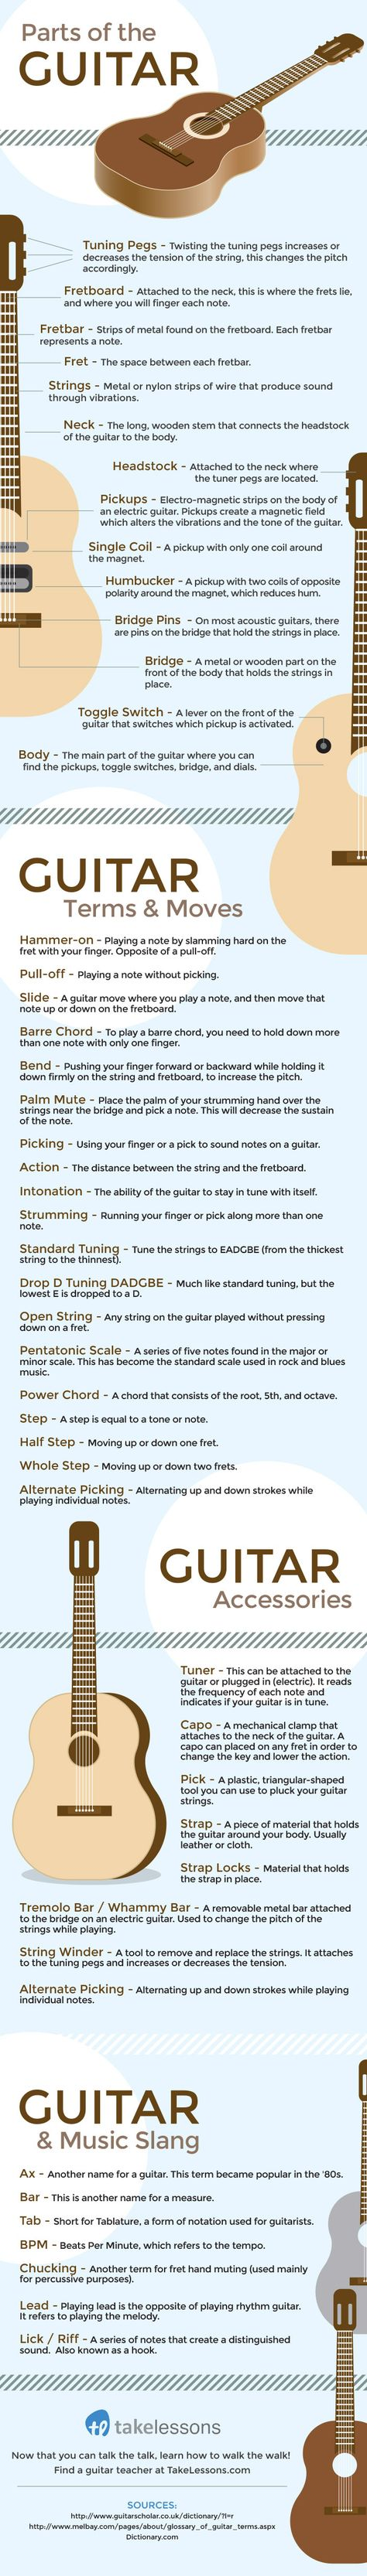 119 Best Play Guitar Images On Pinterest Guitar Lessons Guitar